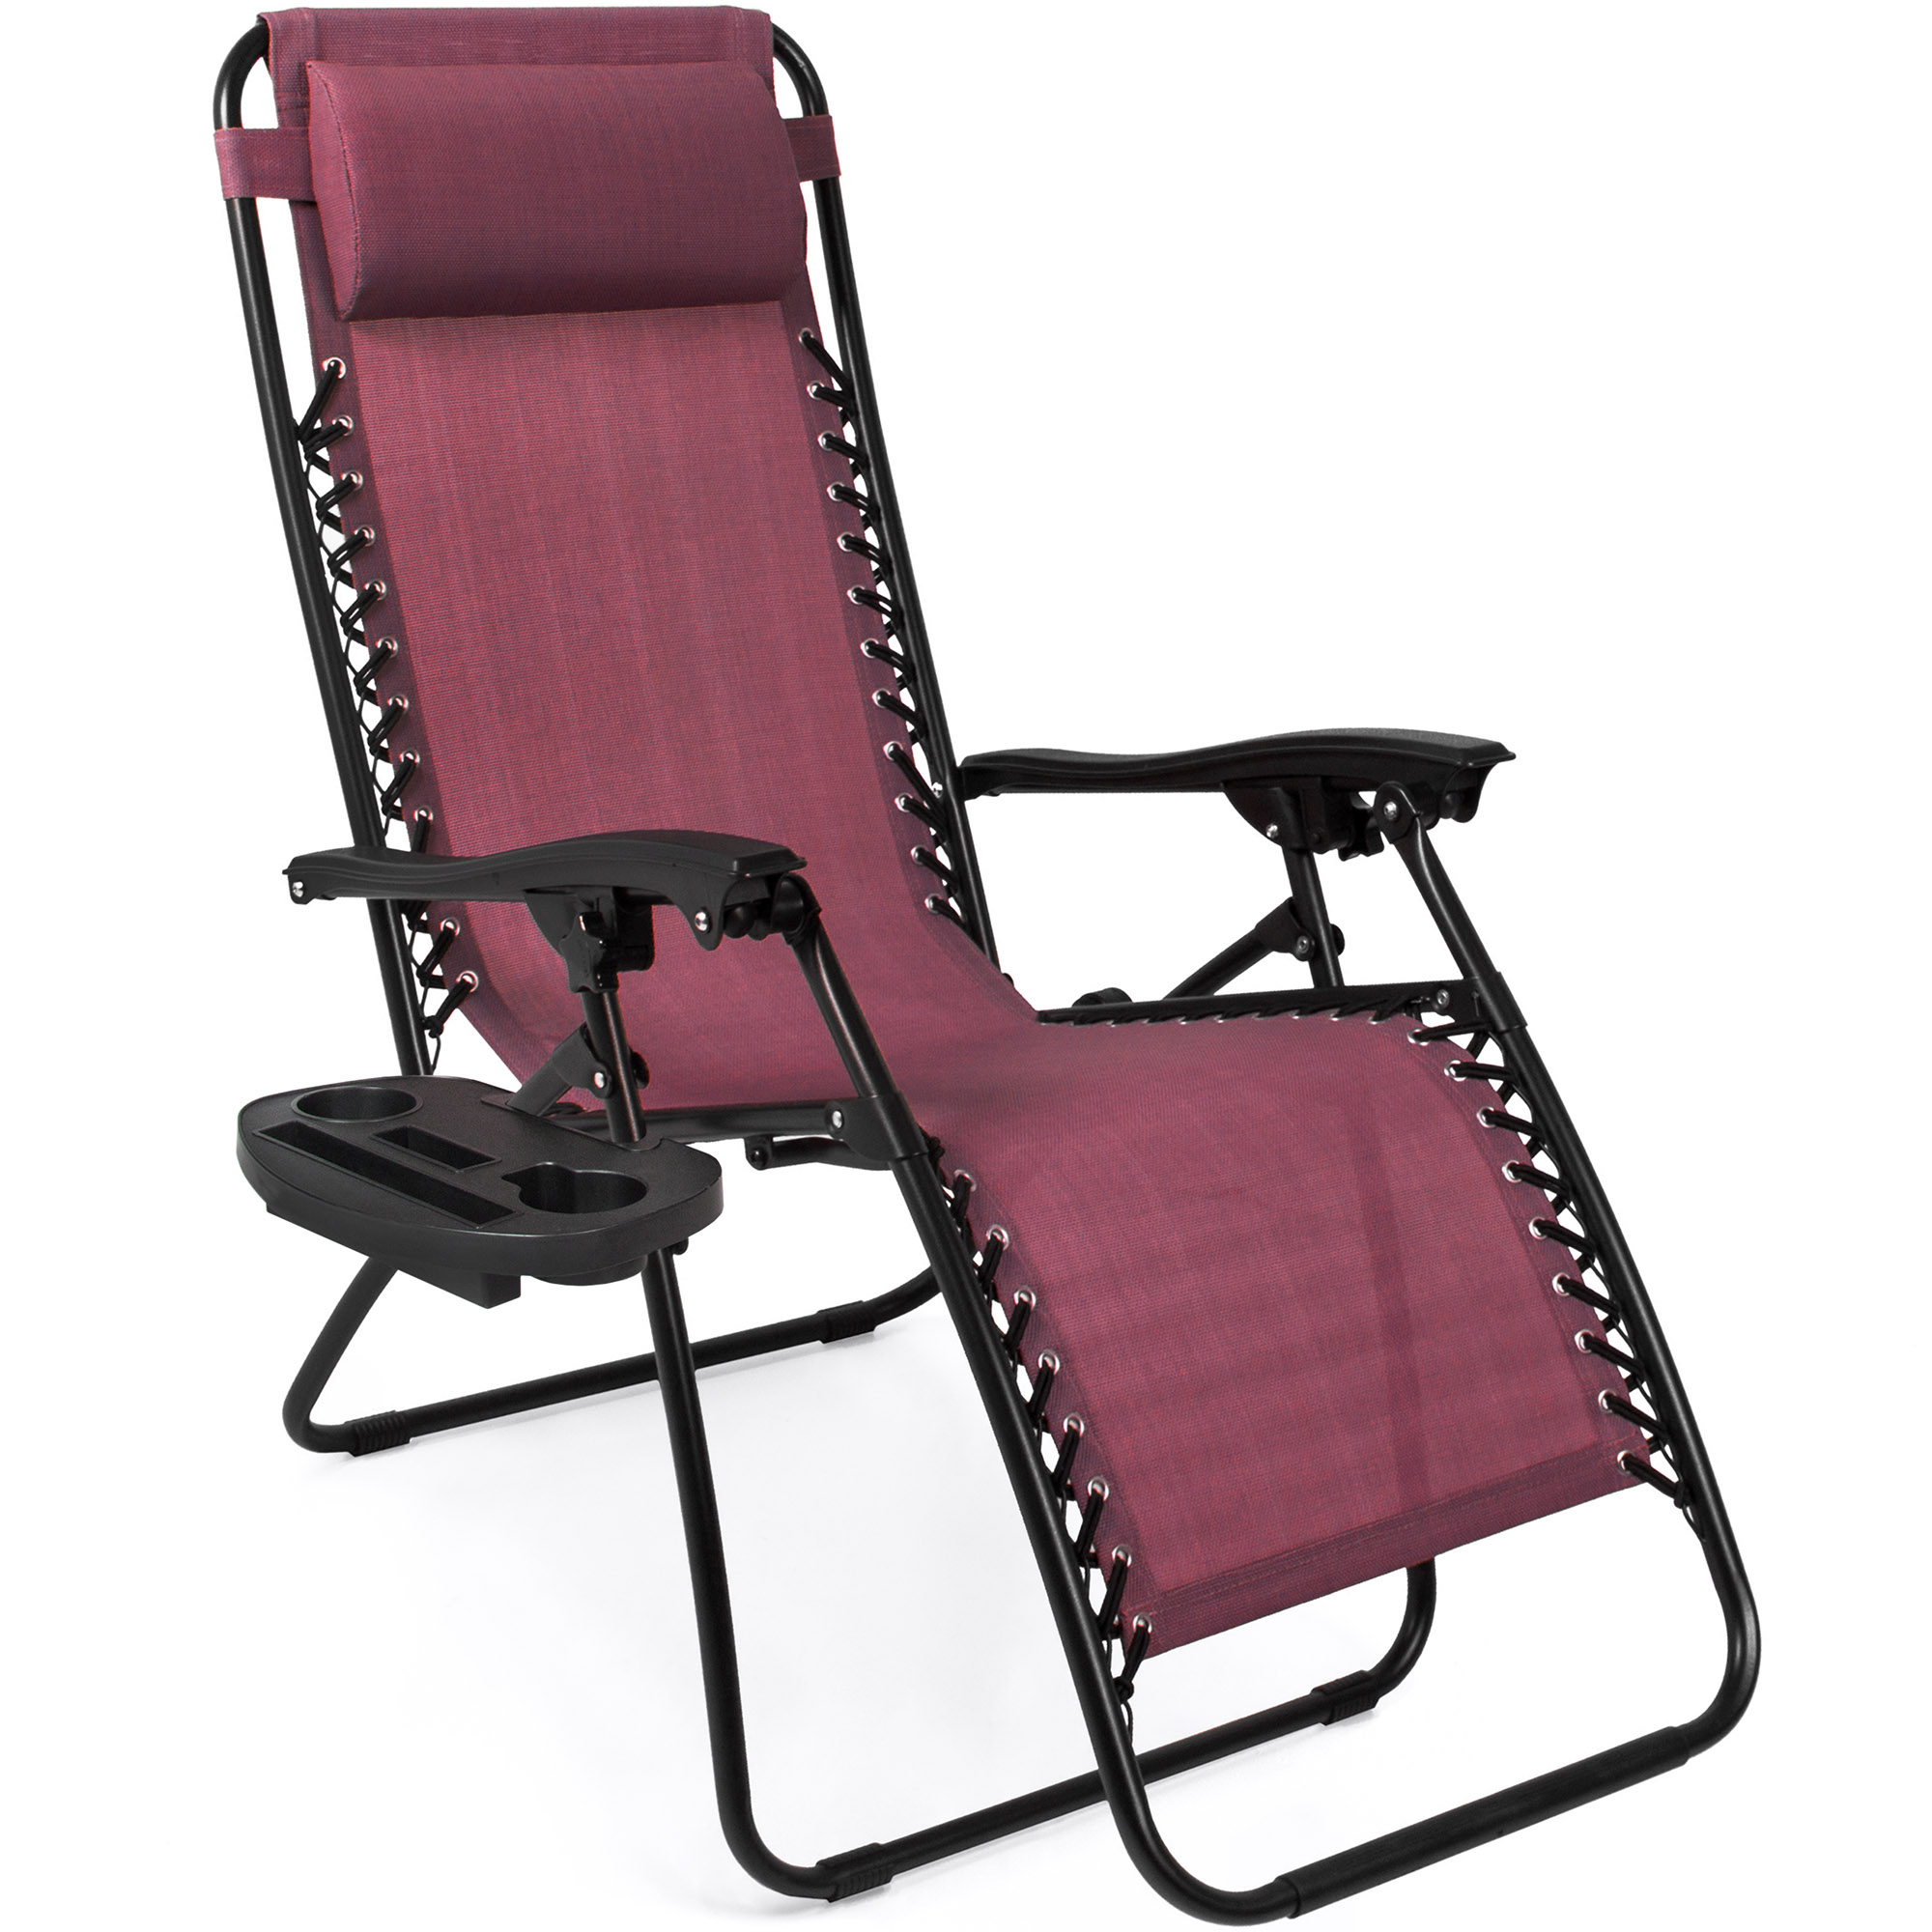 BCP-Set-of-2-Adjustable-Zero-Gravity-Patio-Chair-Recliners-w-Cup-Holders thumbnail 38